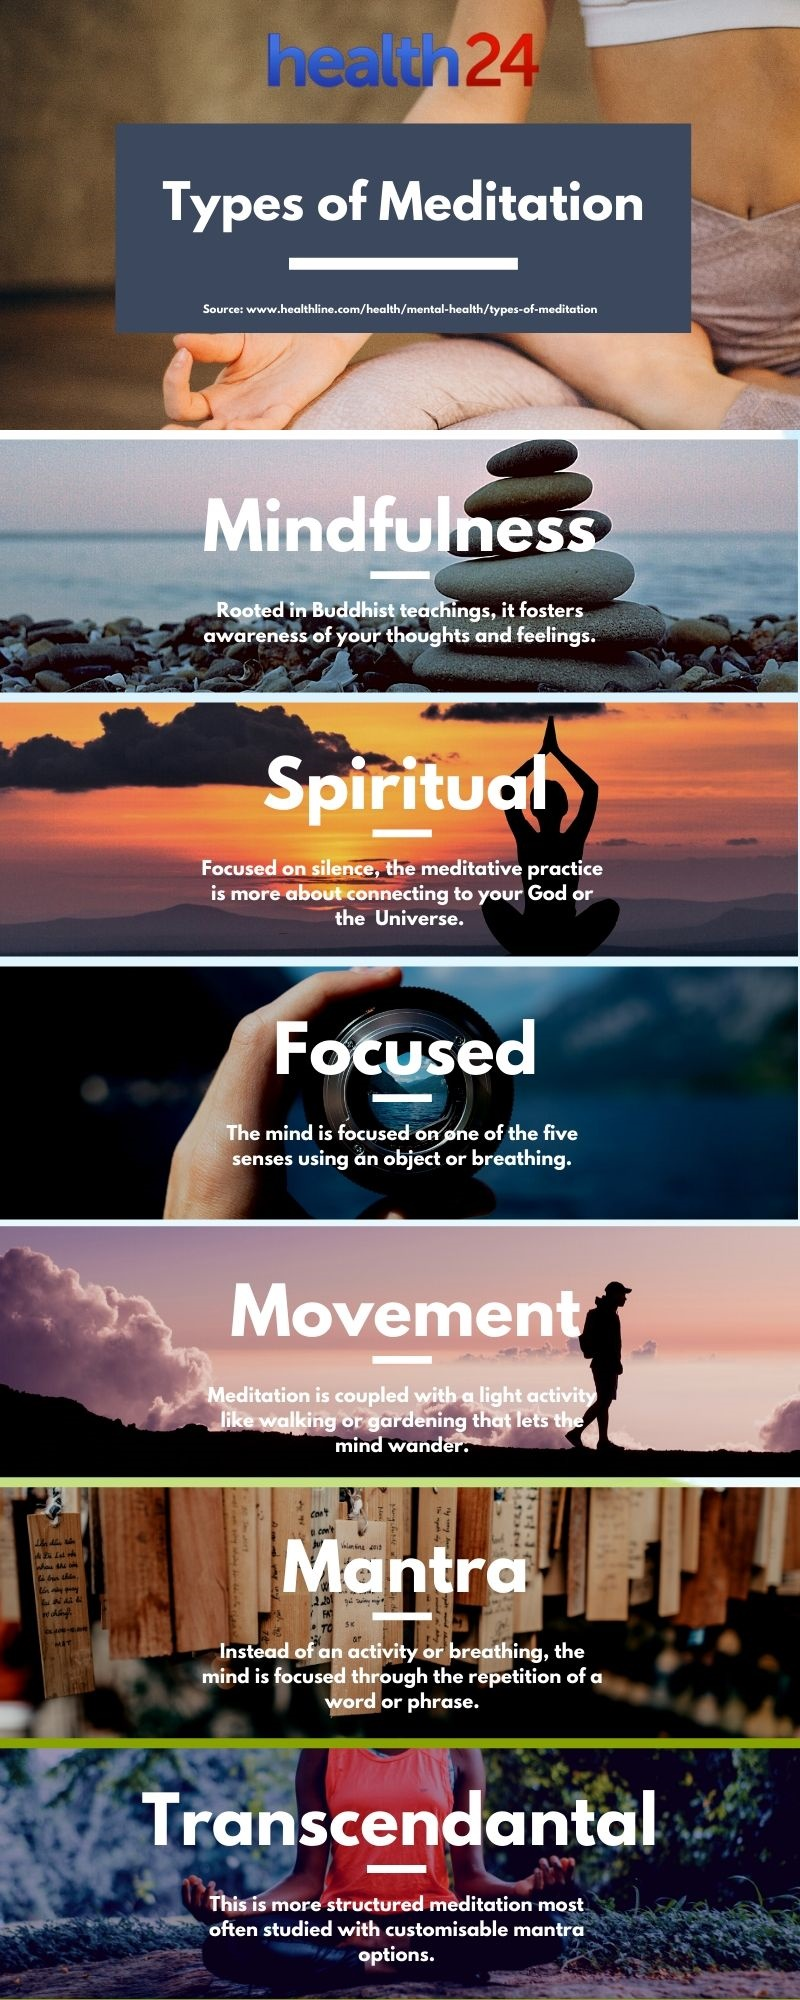 infographic on types of meditation